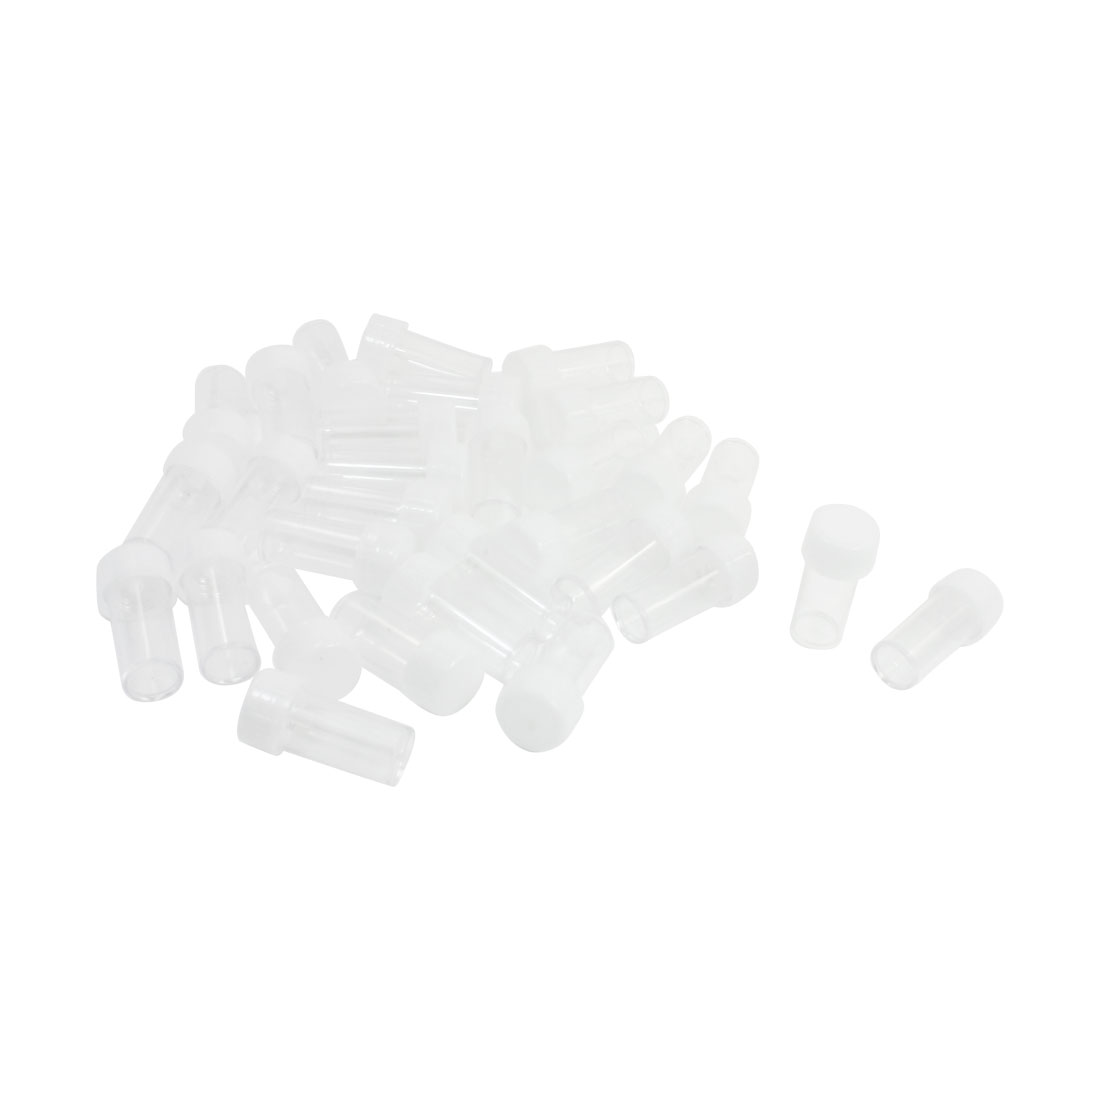 30Pcs White Cover Home Clear Plastic Round Shape Urine Test Cups 10mL